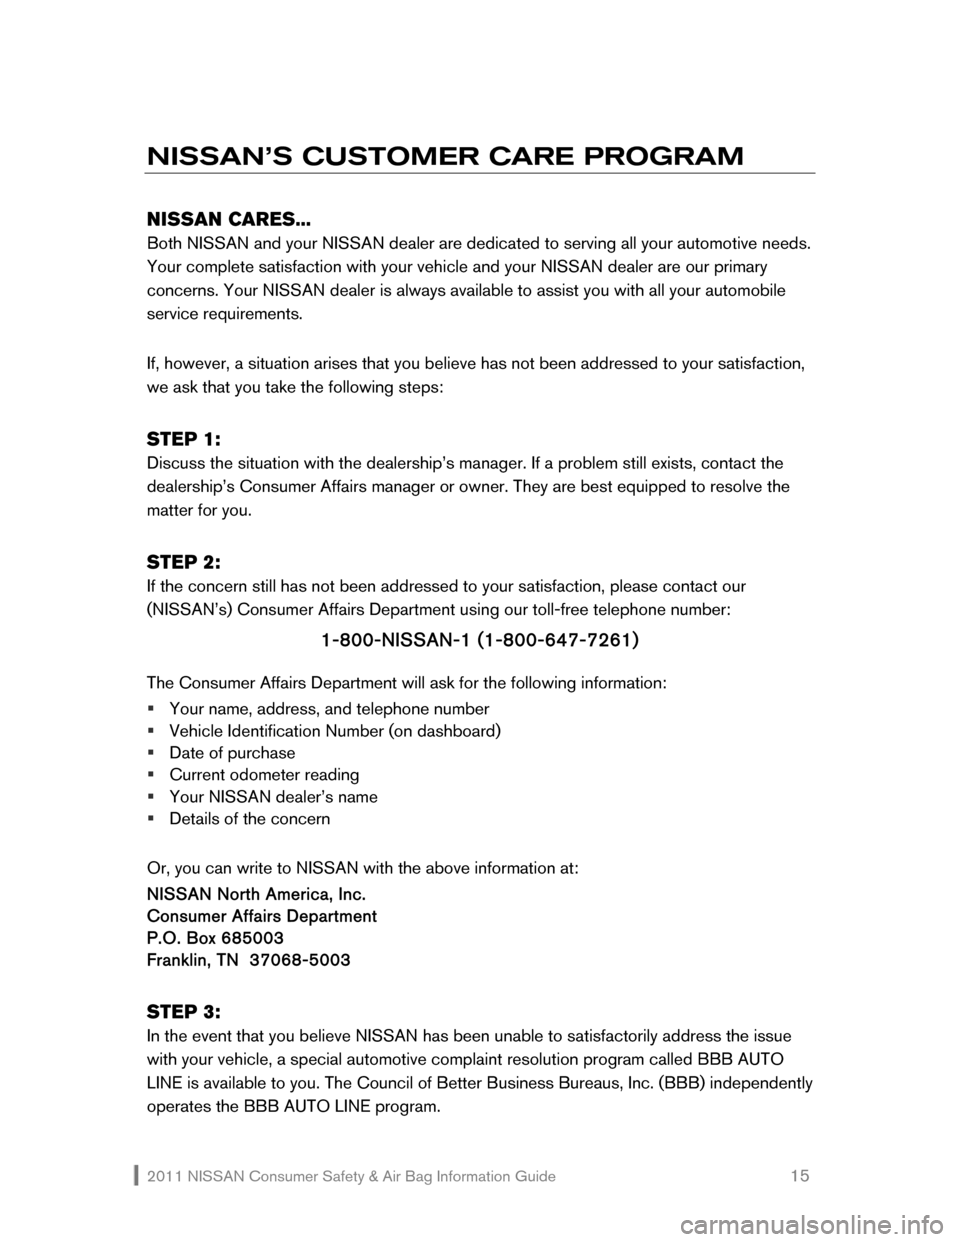 NISSAN ROGUE 2011 1.G Consumer Safety Air Bag Information Guide, Page 16